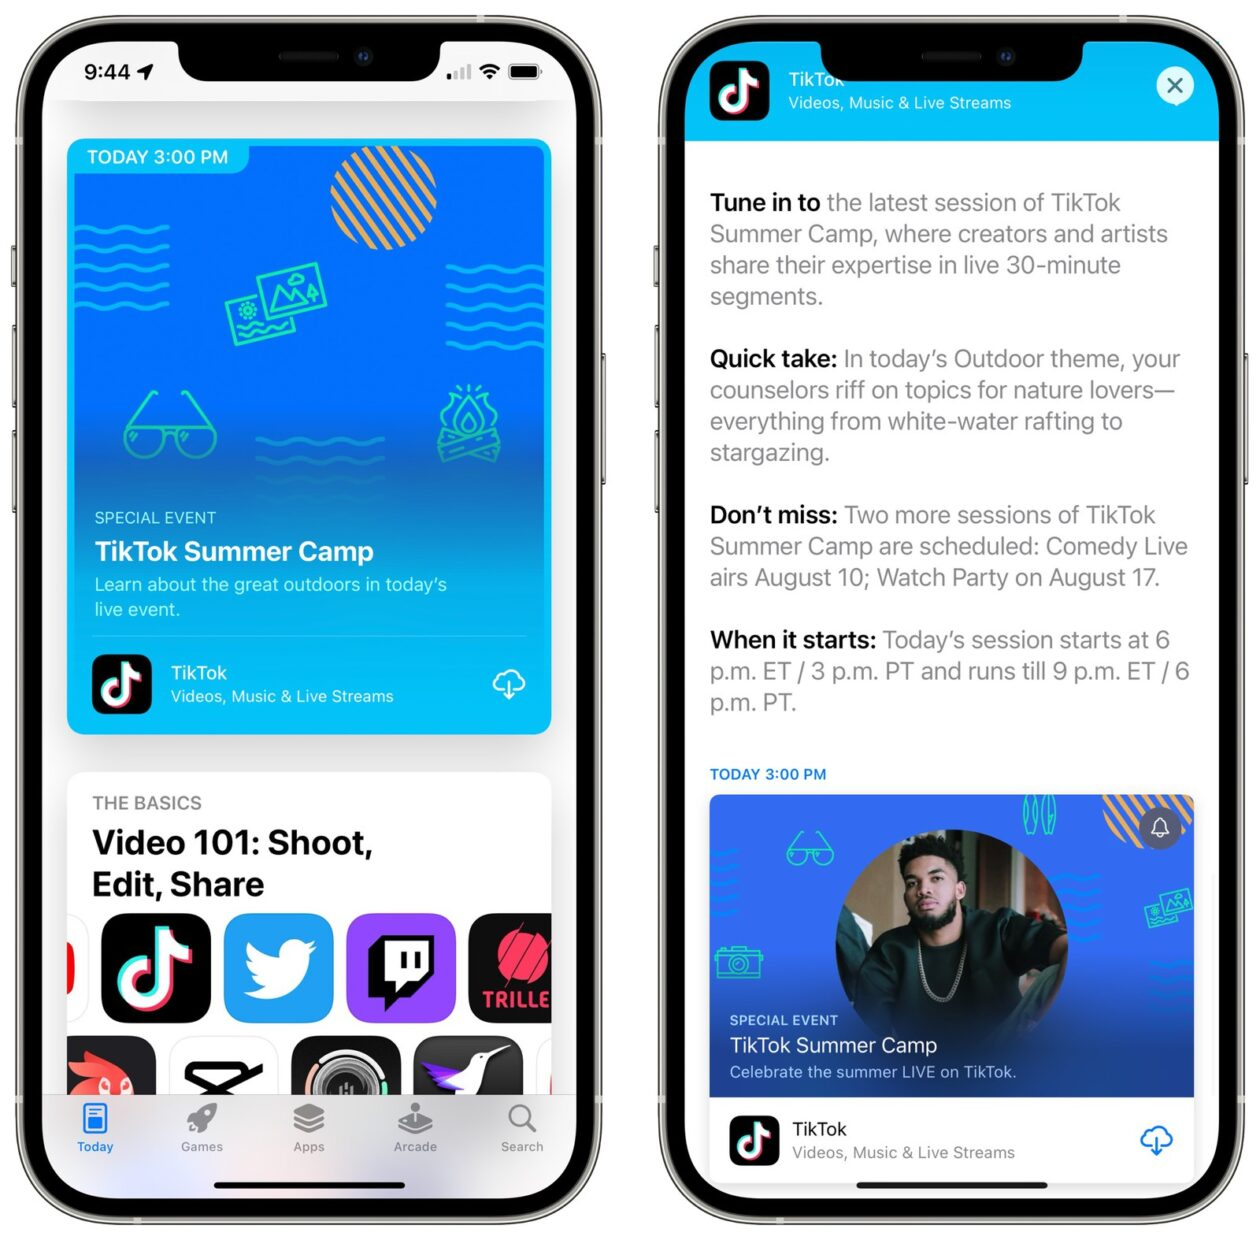 App Store Events